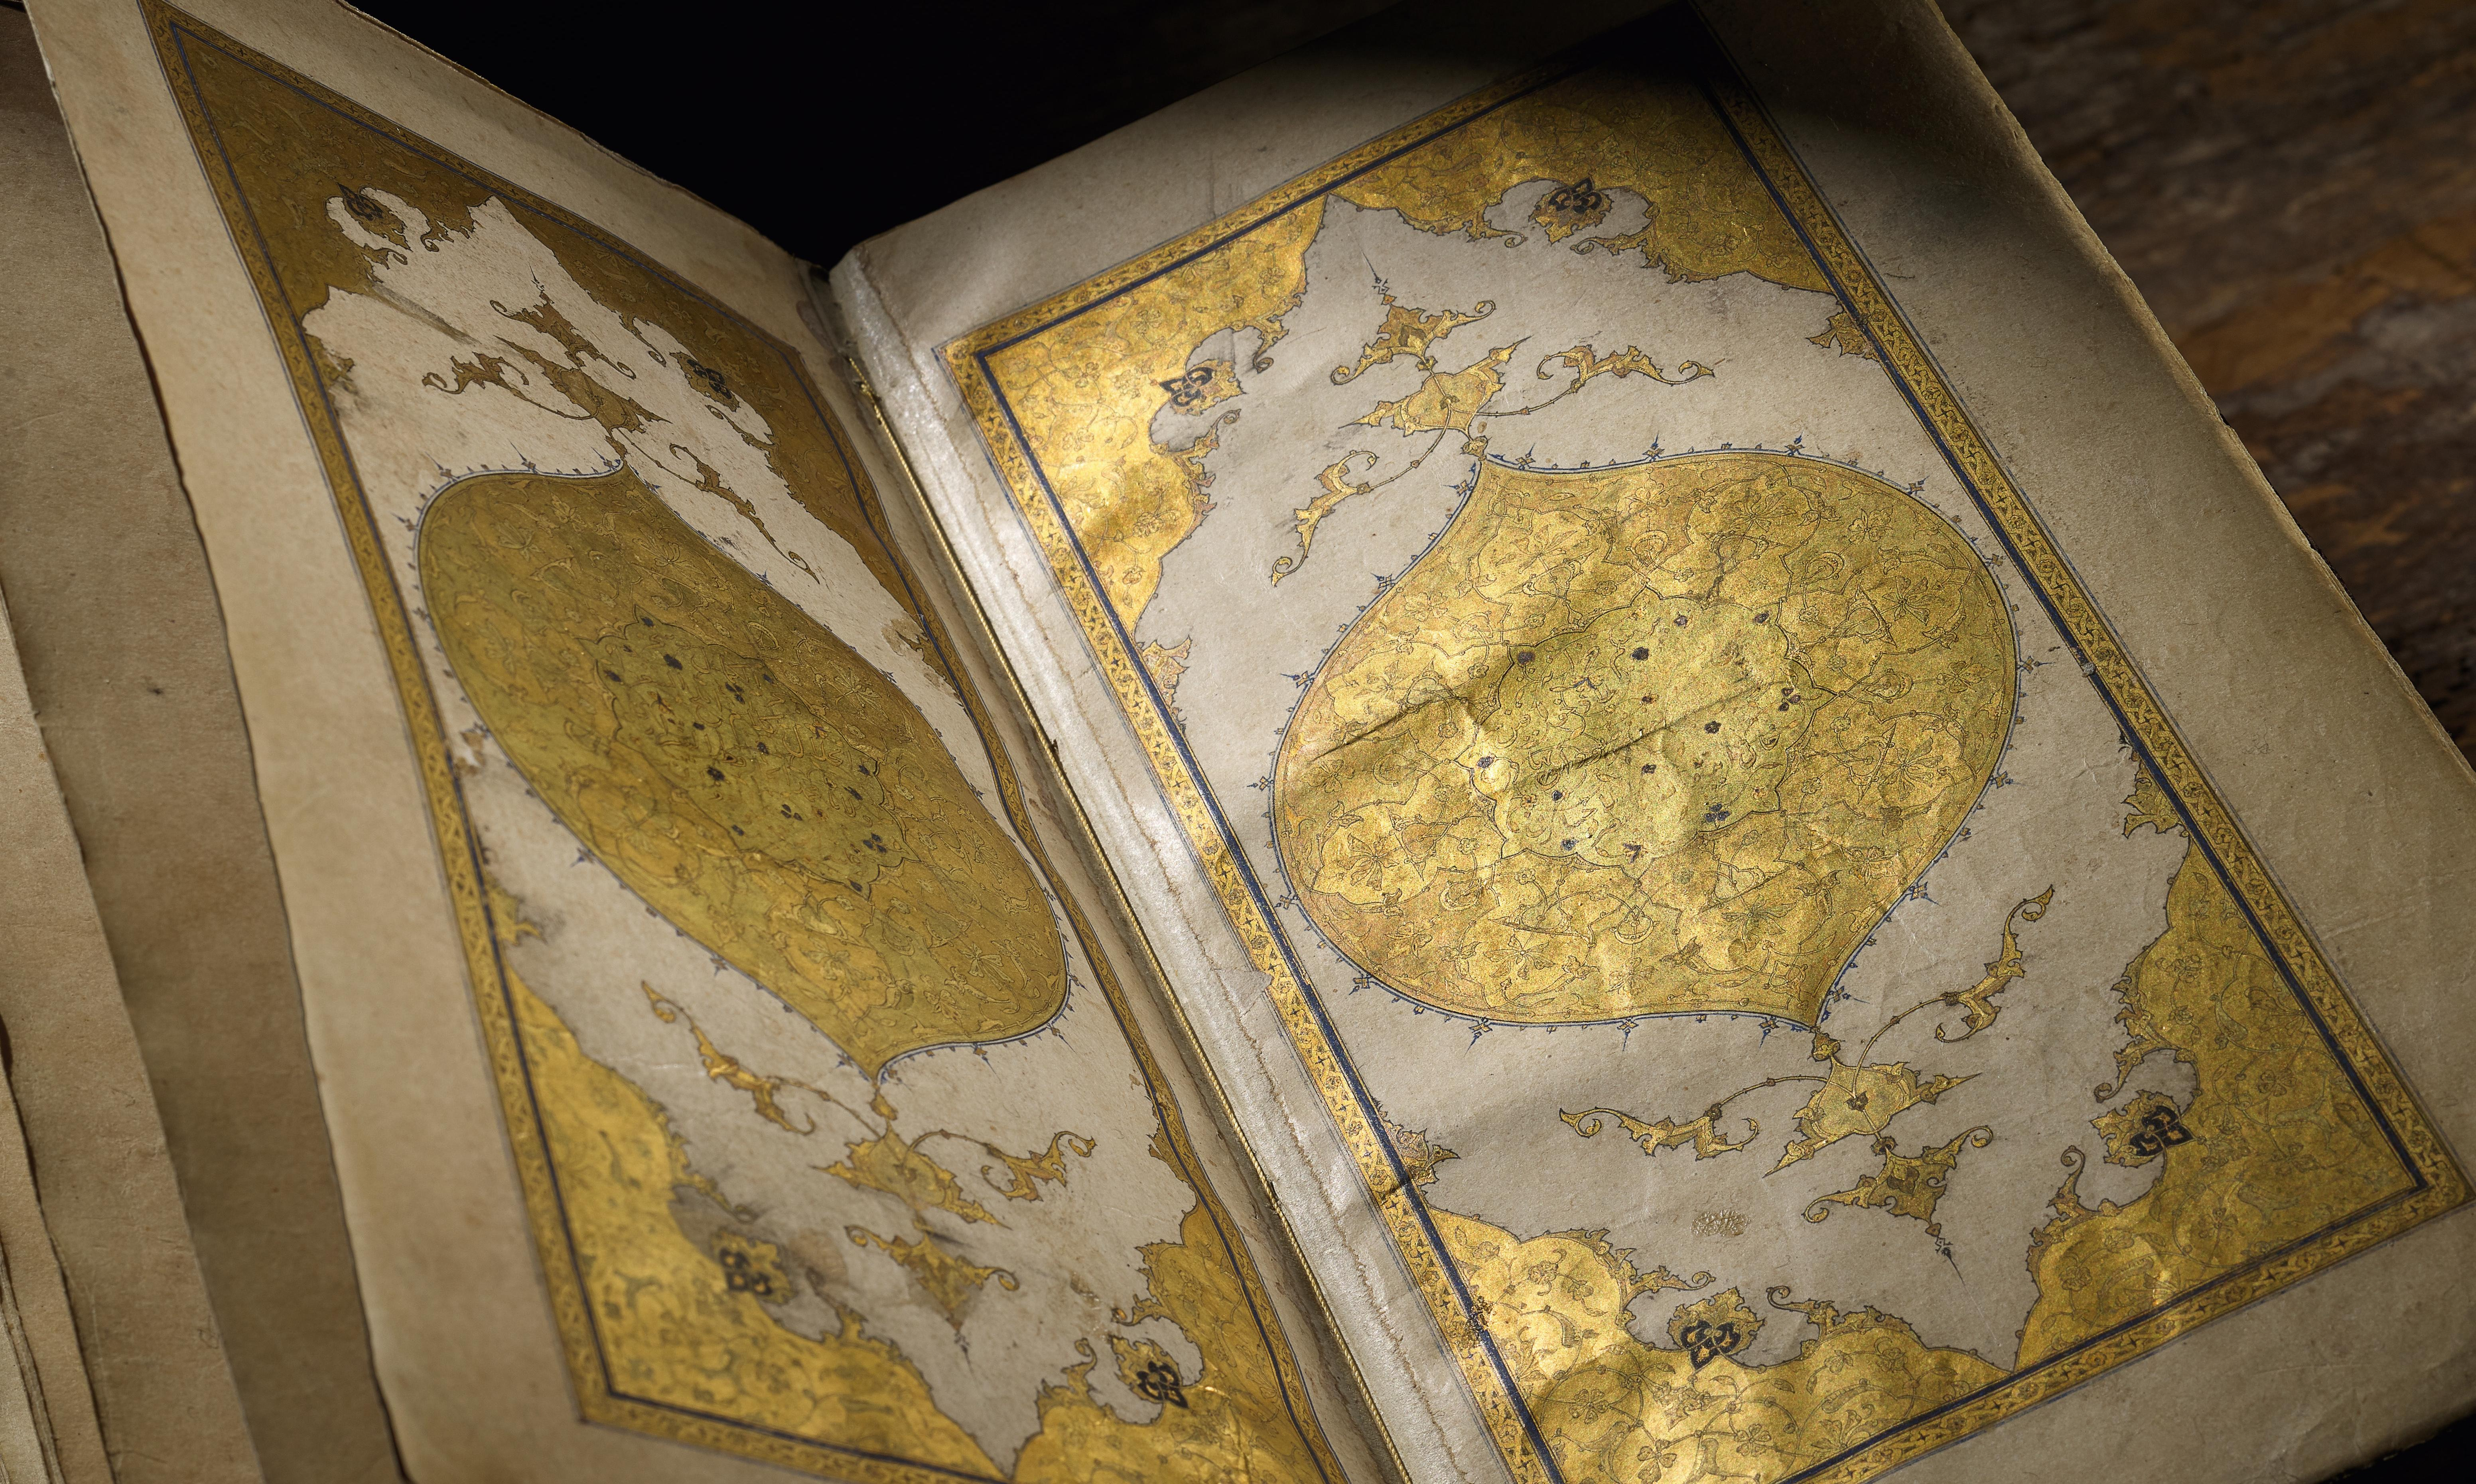 Precious stolen work by Persian poet Hafez, now recovered, will be sold